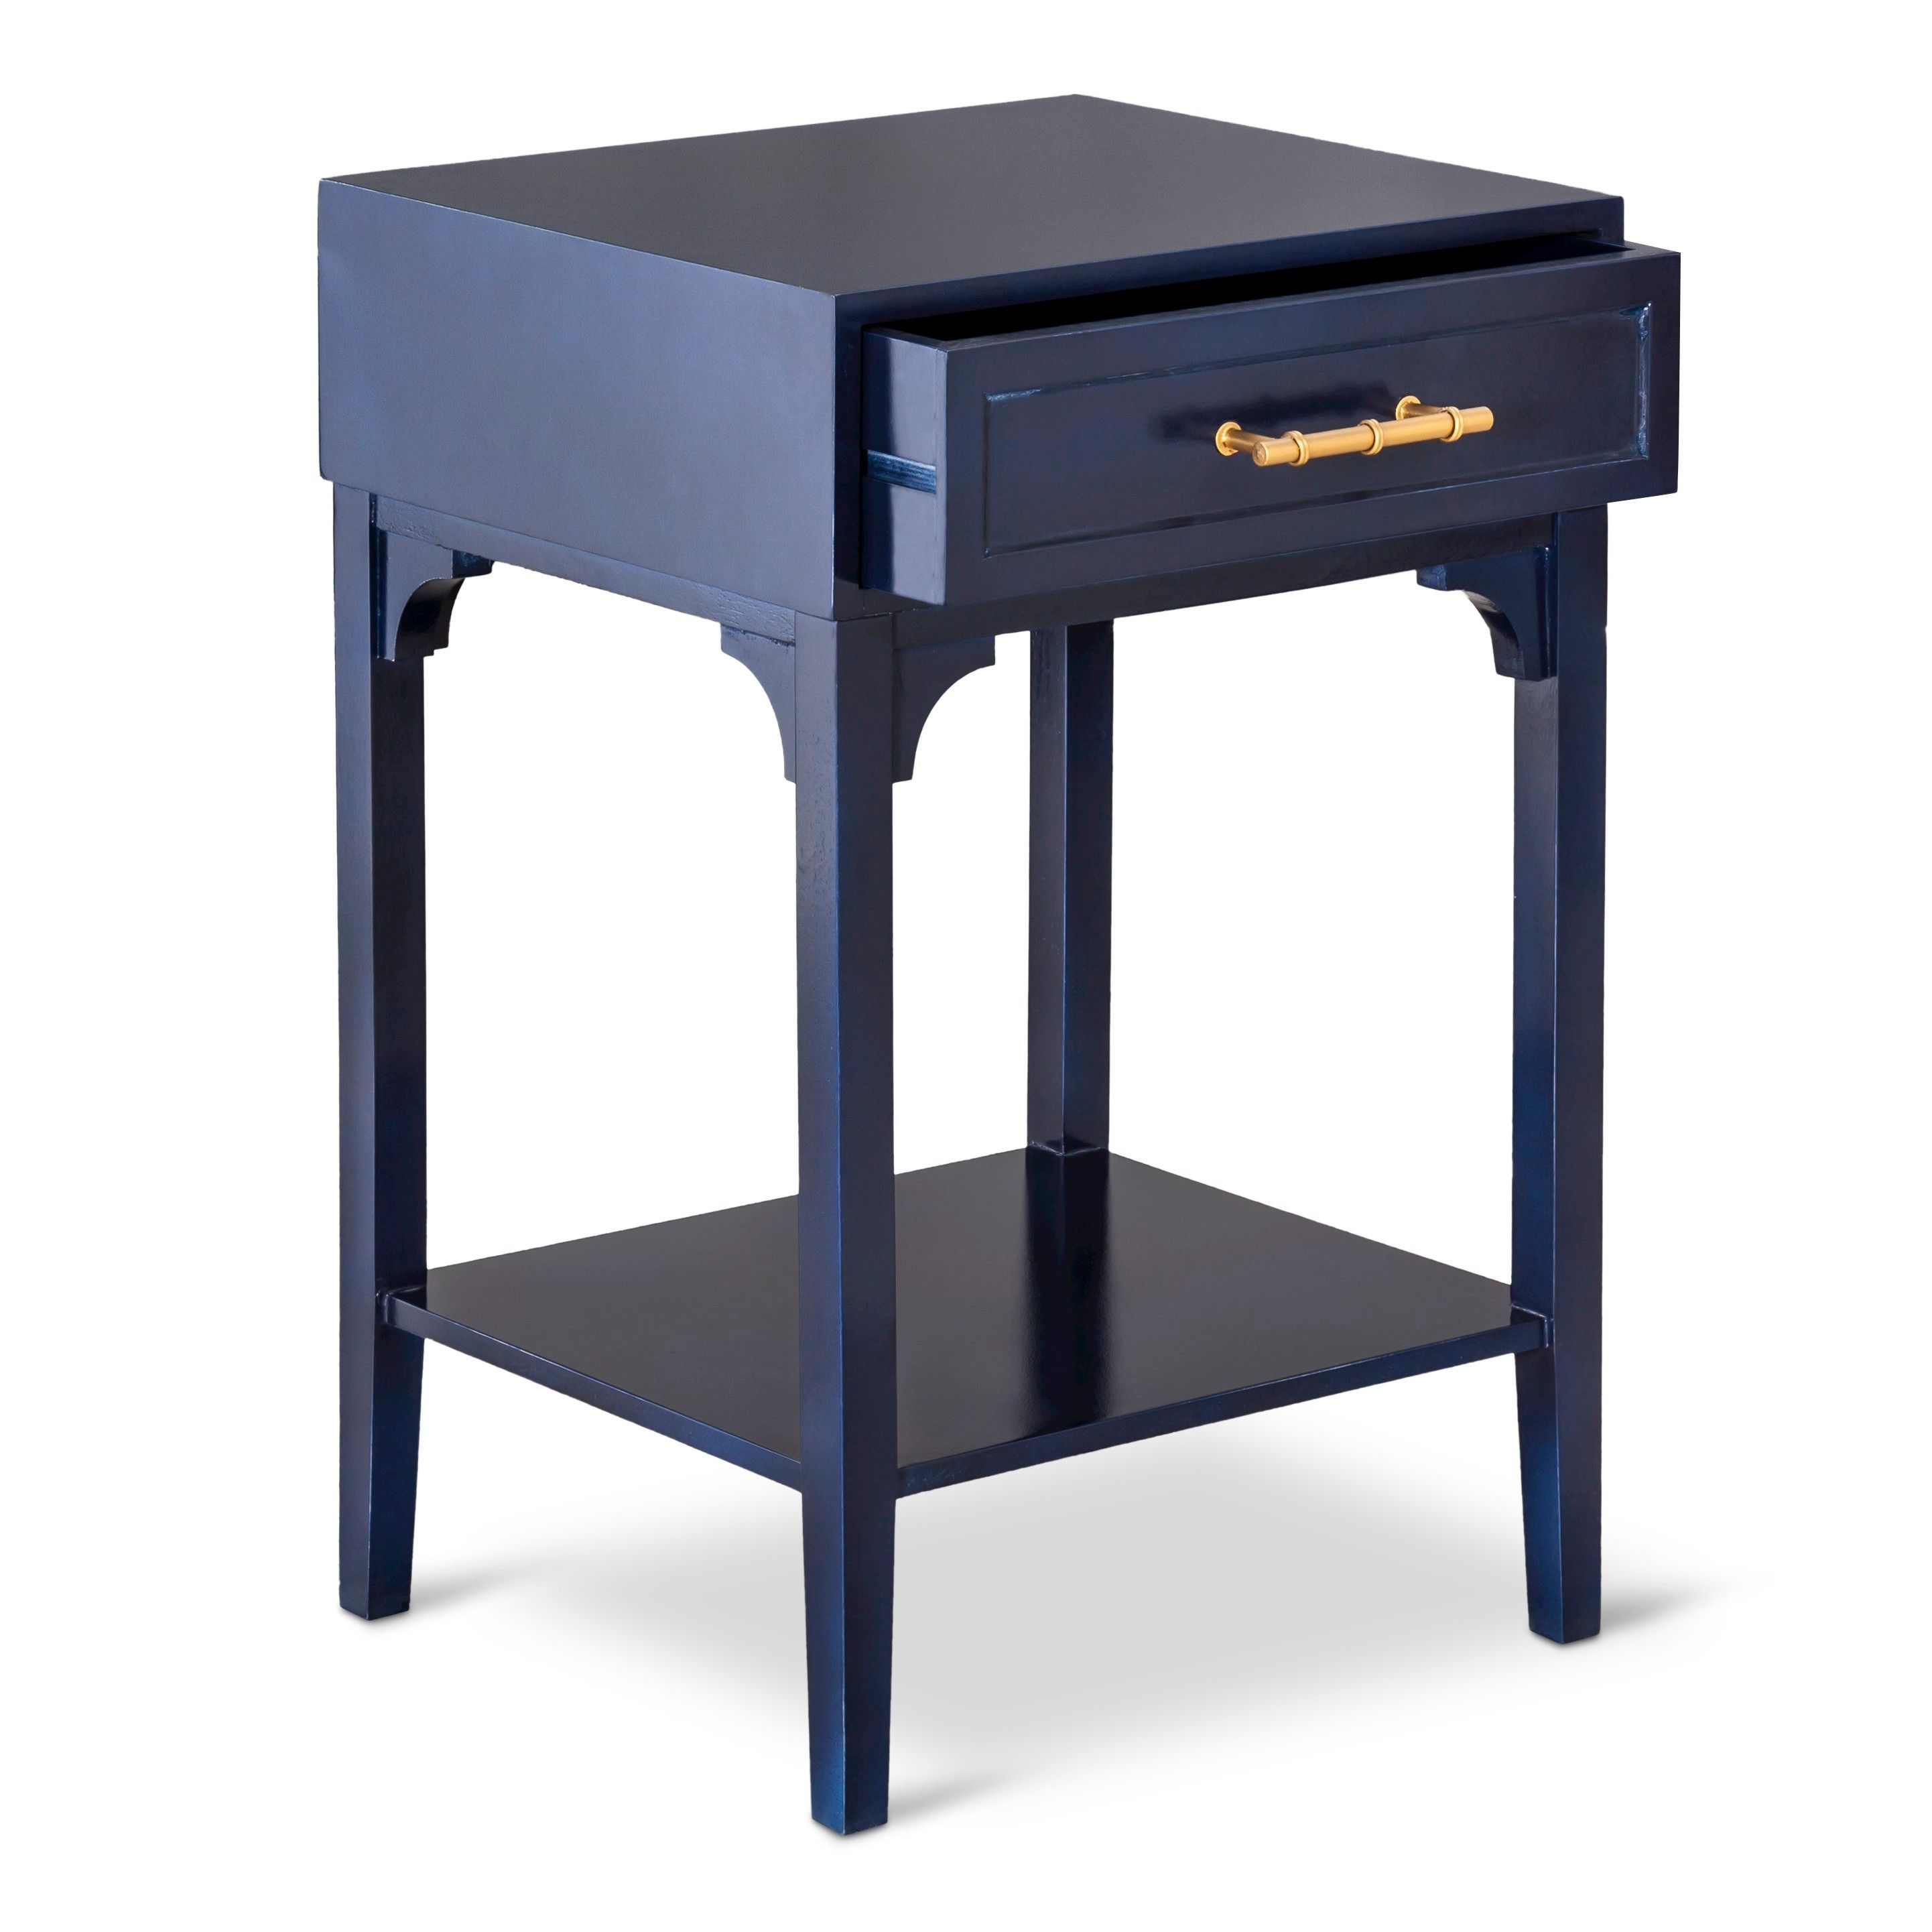 threshold accent table with bamboo motif handle target loft gold center black steel coffee glass bedside cabinets next half moon wall oval teak extra long runners circular outdoor